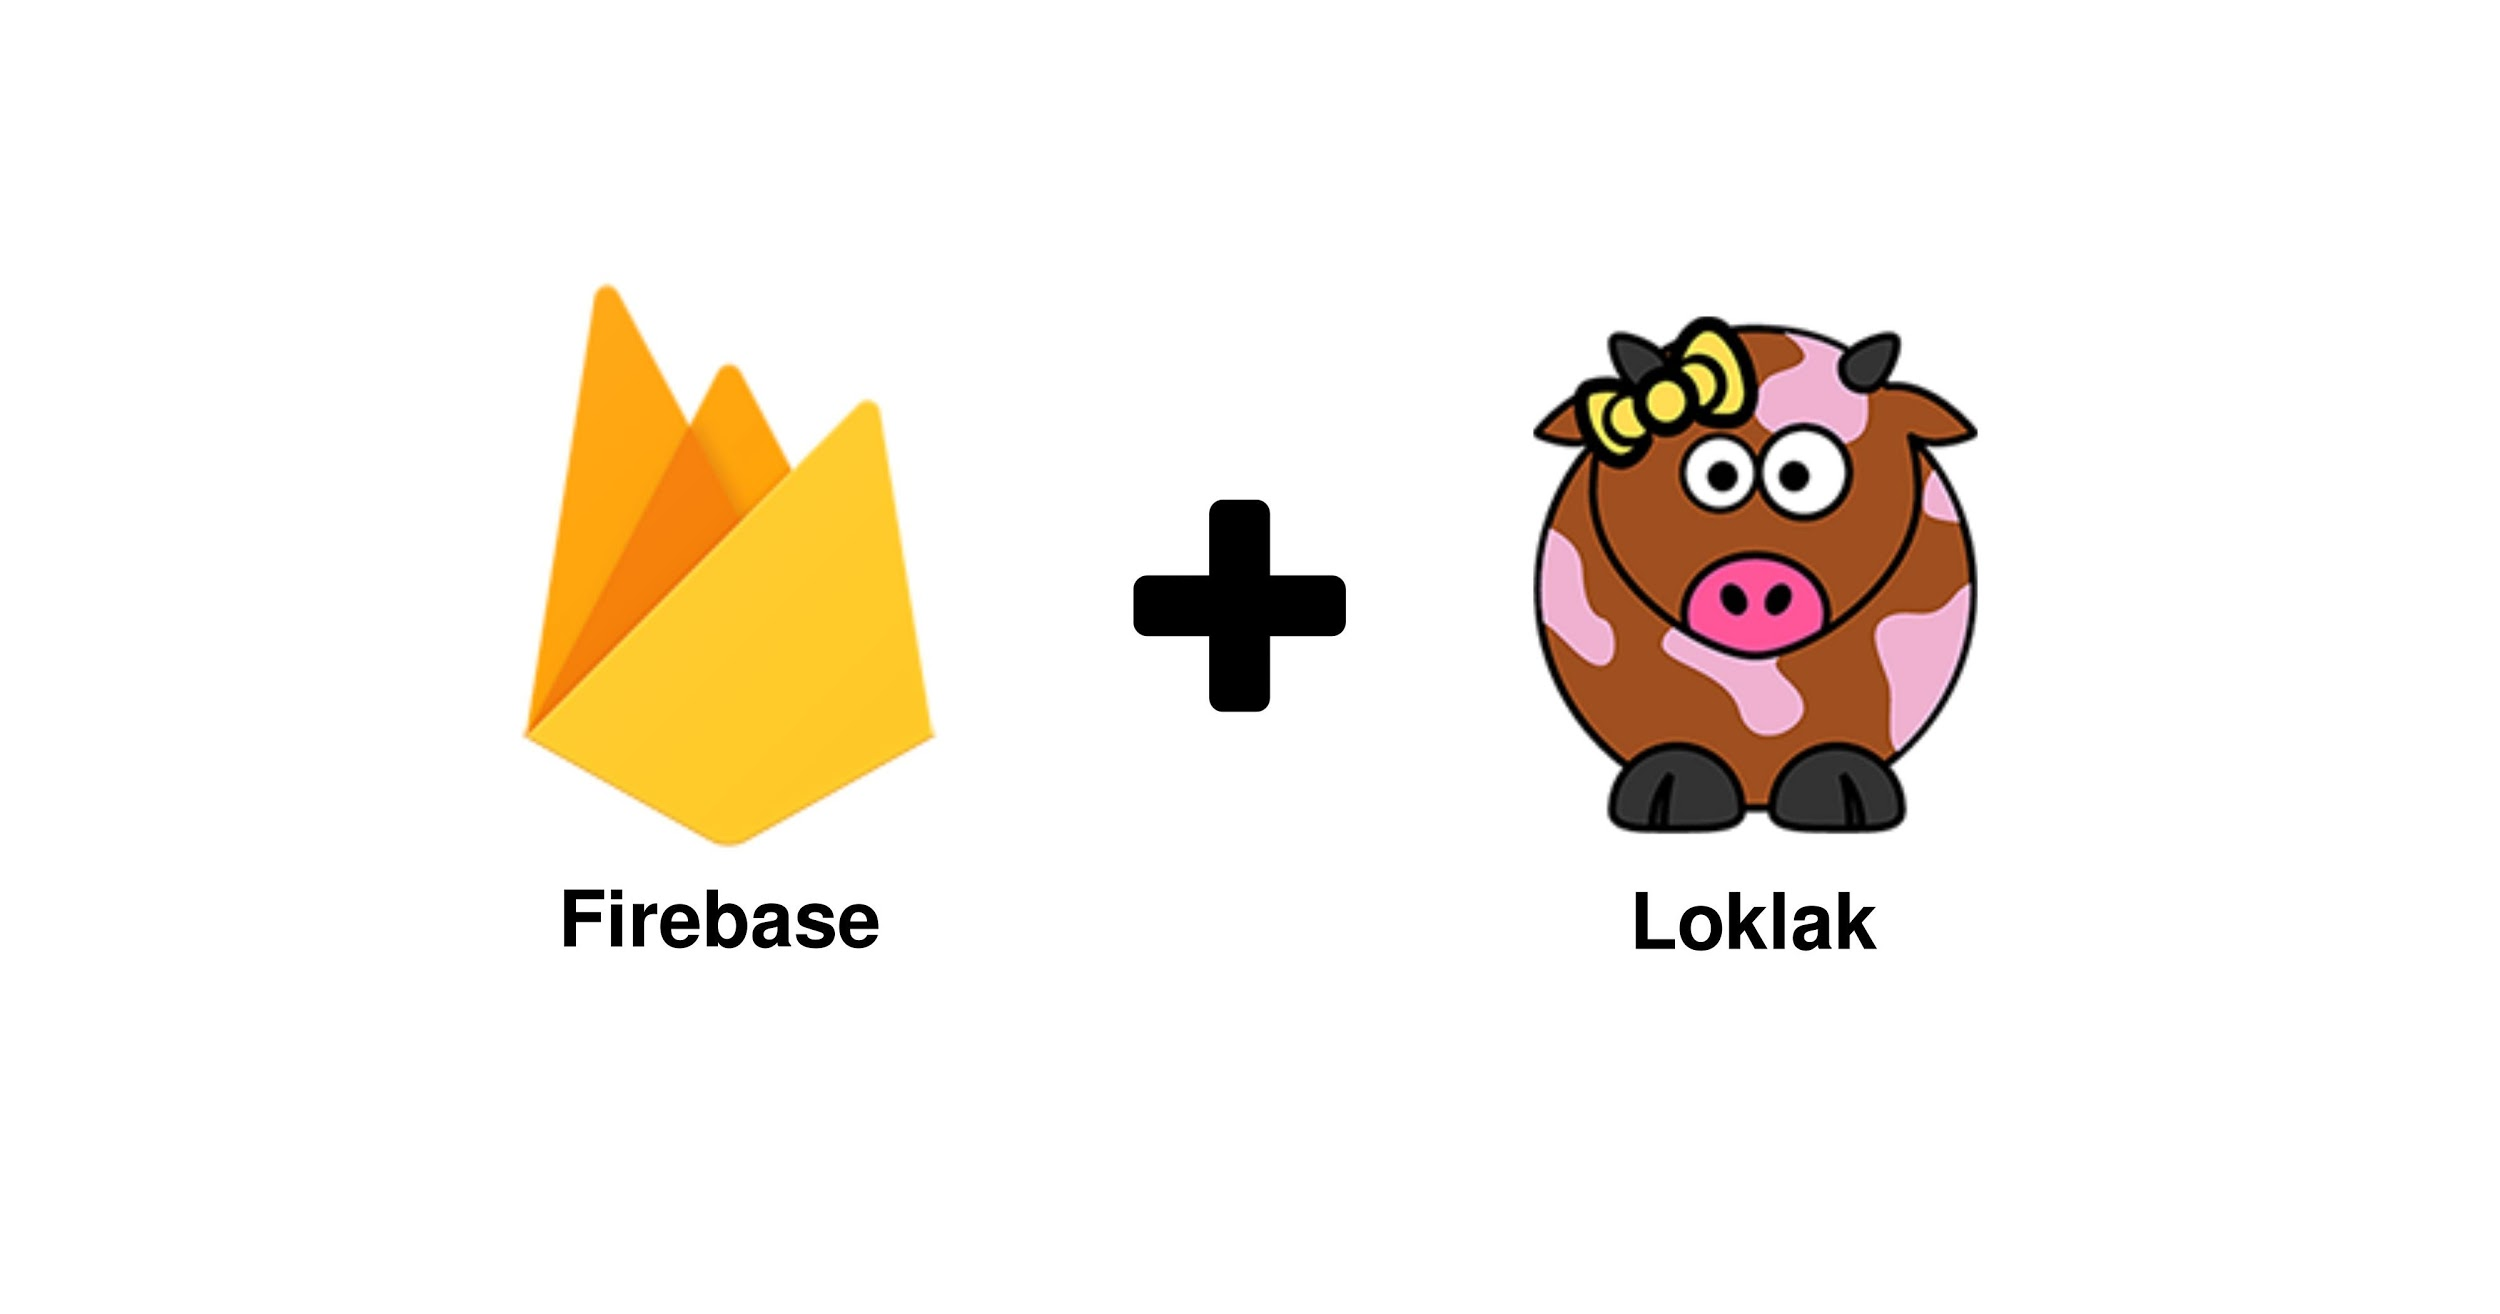 Configuring Firebase in Loklak Search